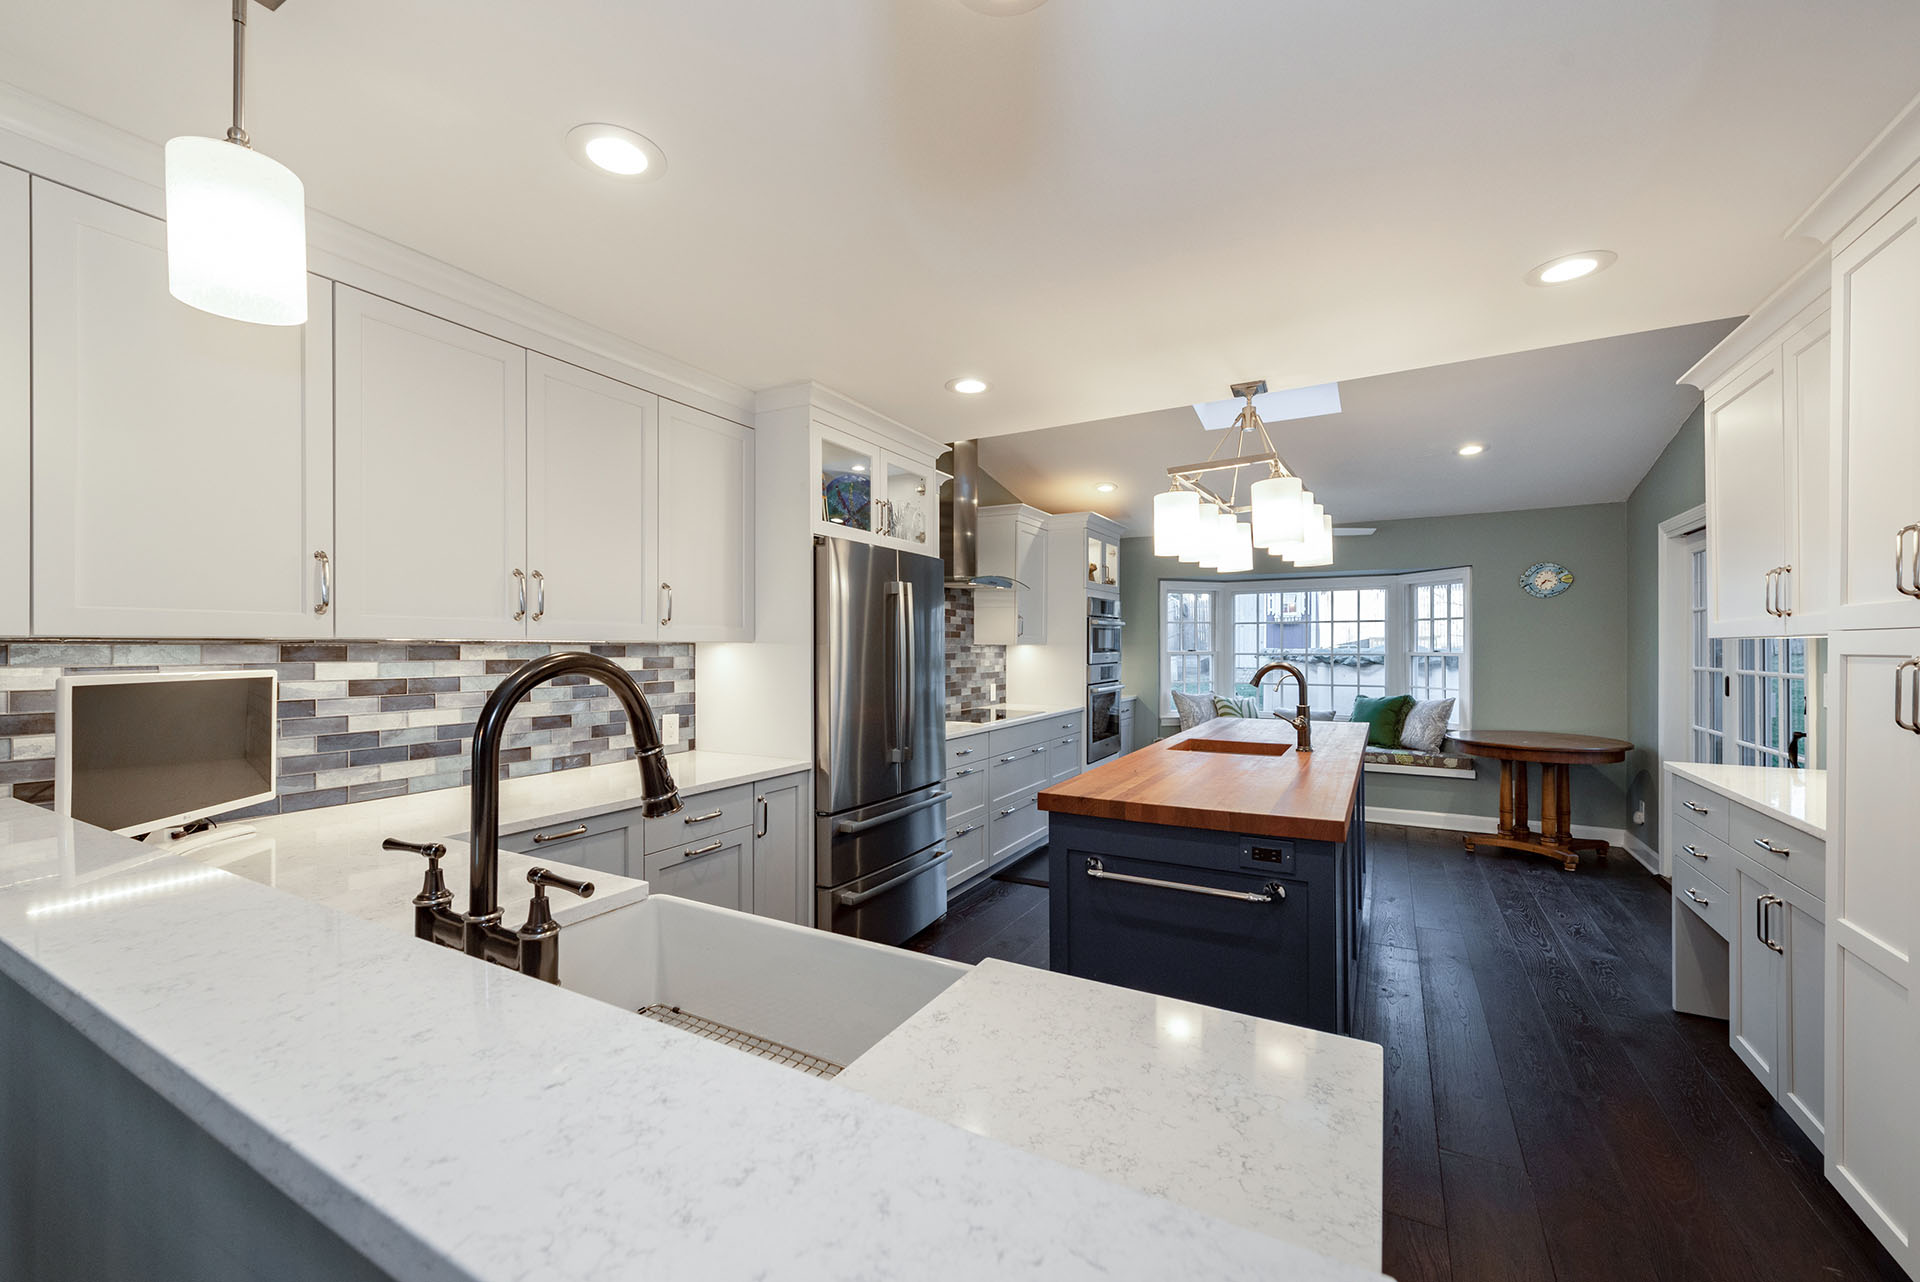 joan bigg kitchen design contemporary farmhouse kitchen westchester ny